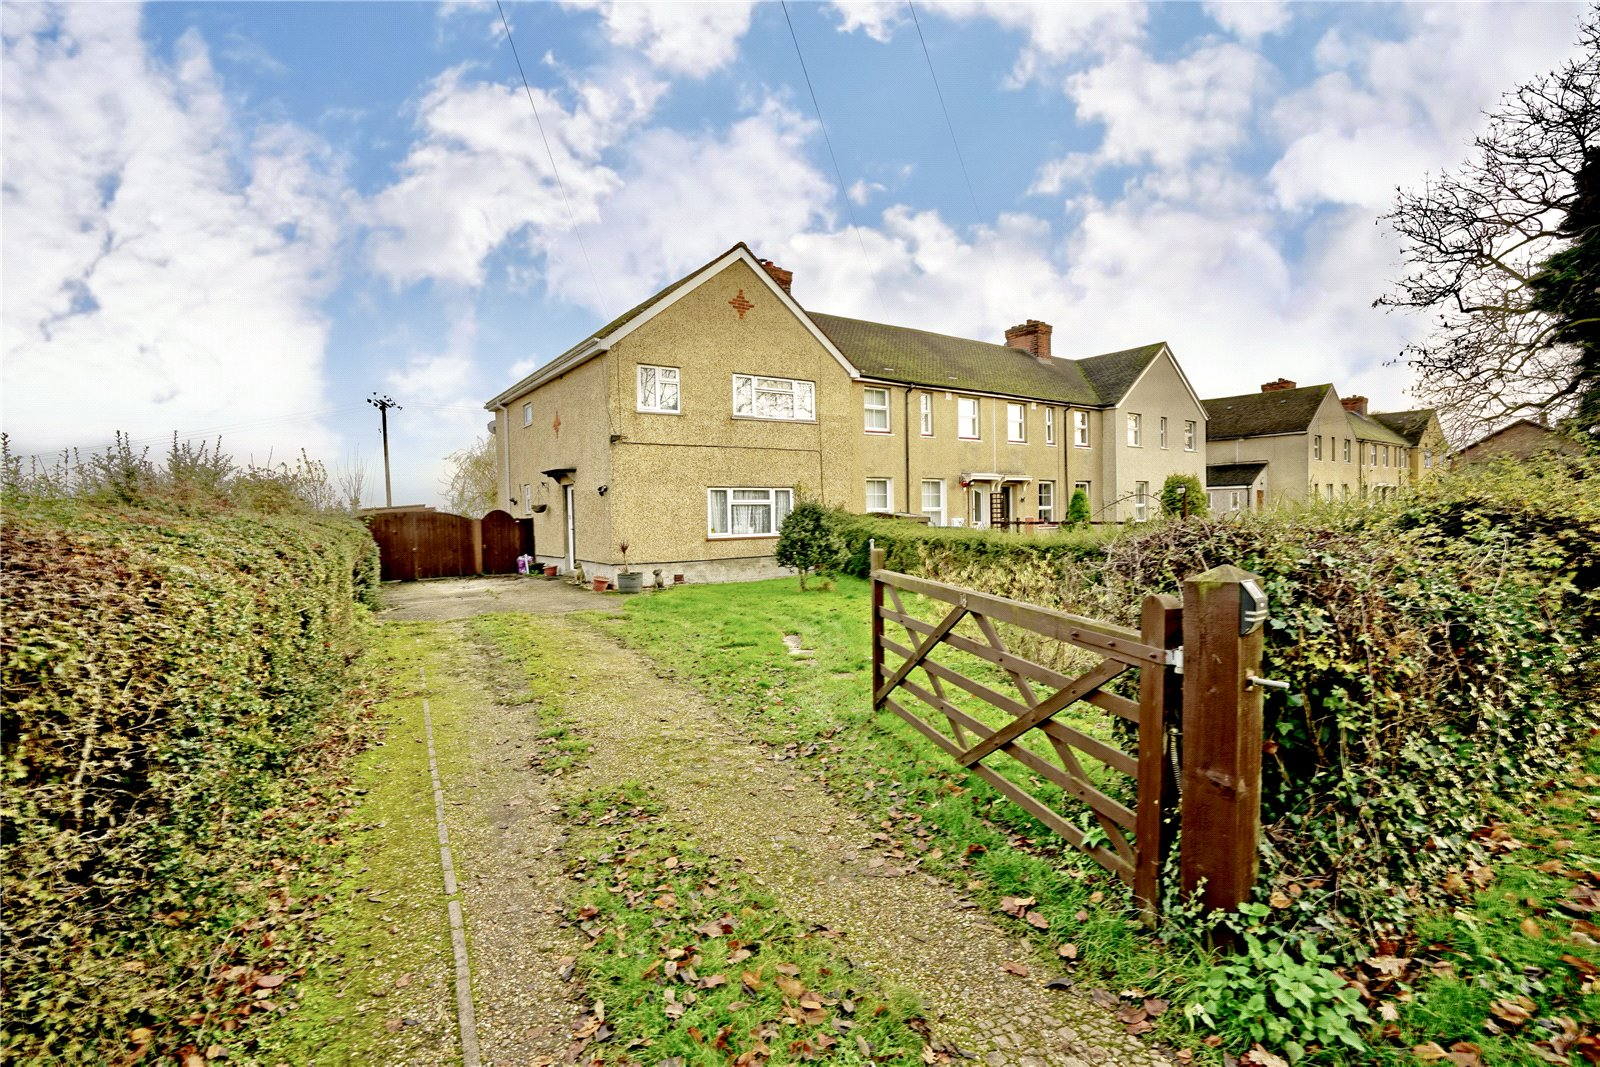 3 bed house for sale in Colmworth, MK44